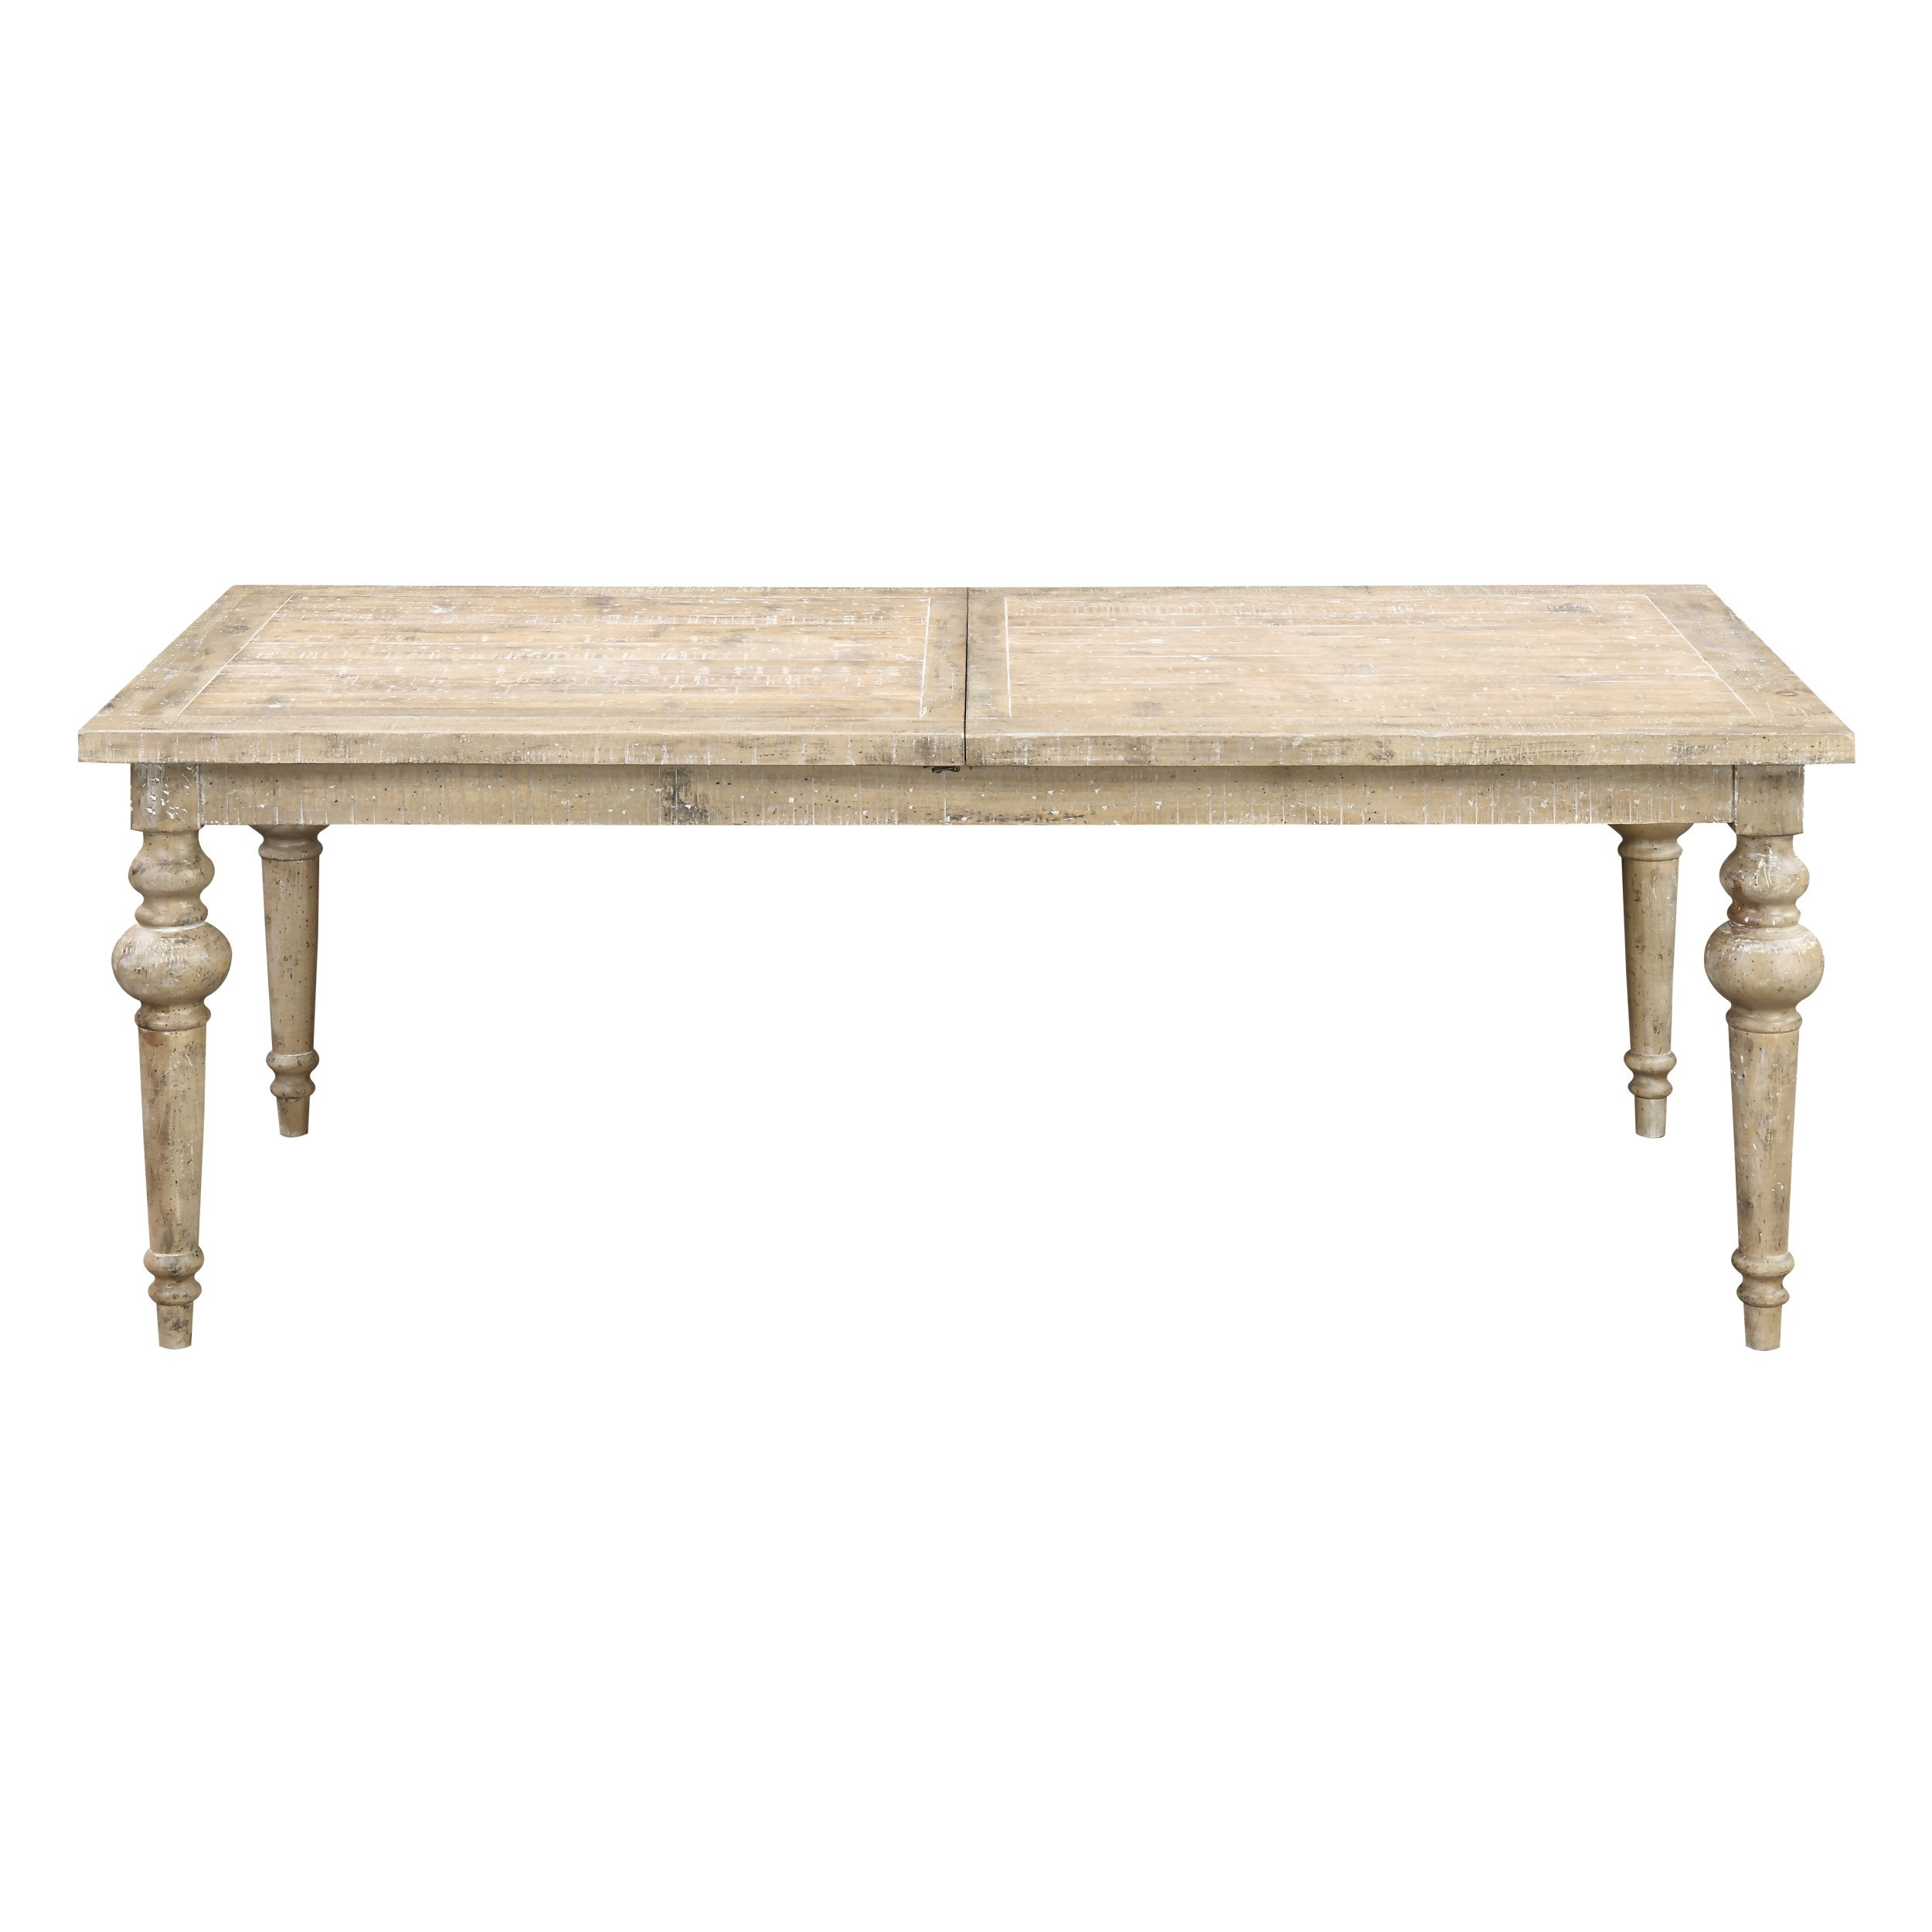 Emerald Home Interlude Sandstone Gray Dining Table with Self Storing Butterfly Extension Leaf And Turned Legs by Emerald Home Furnishings